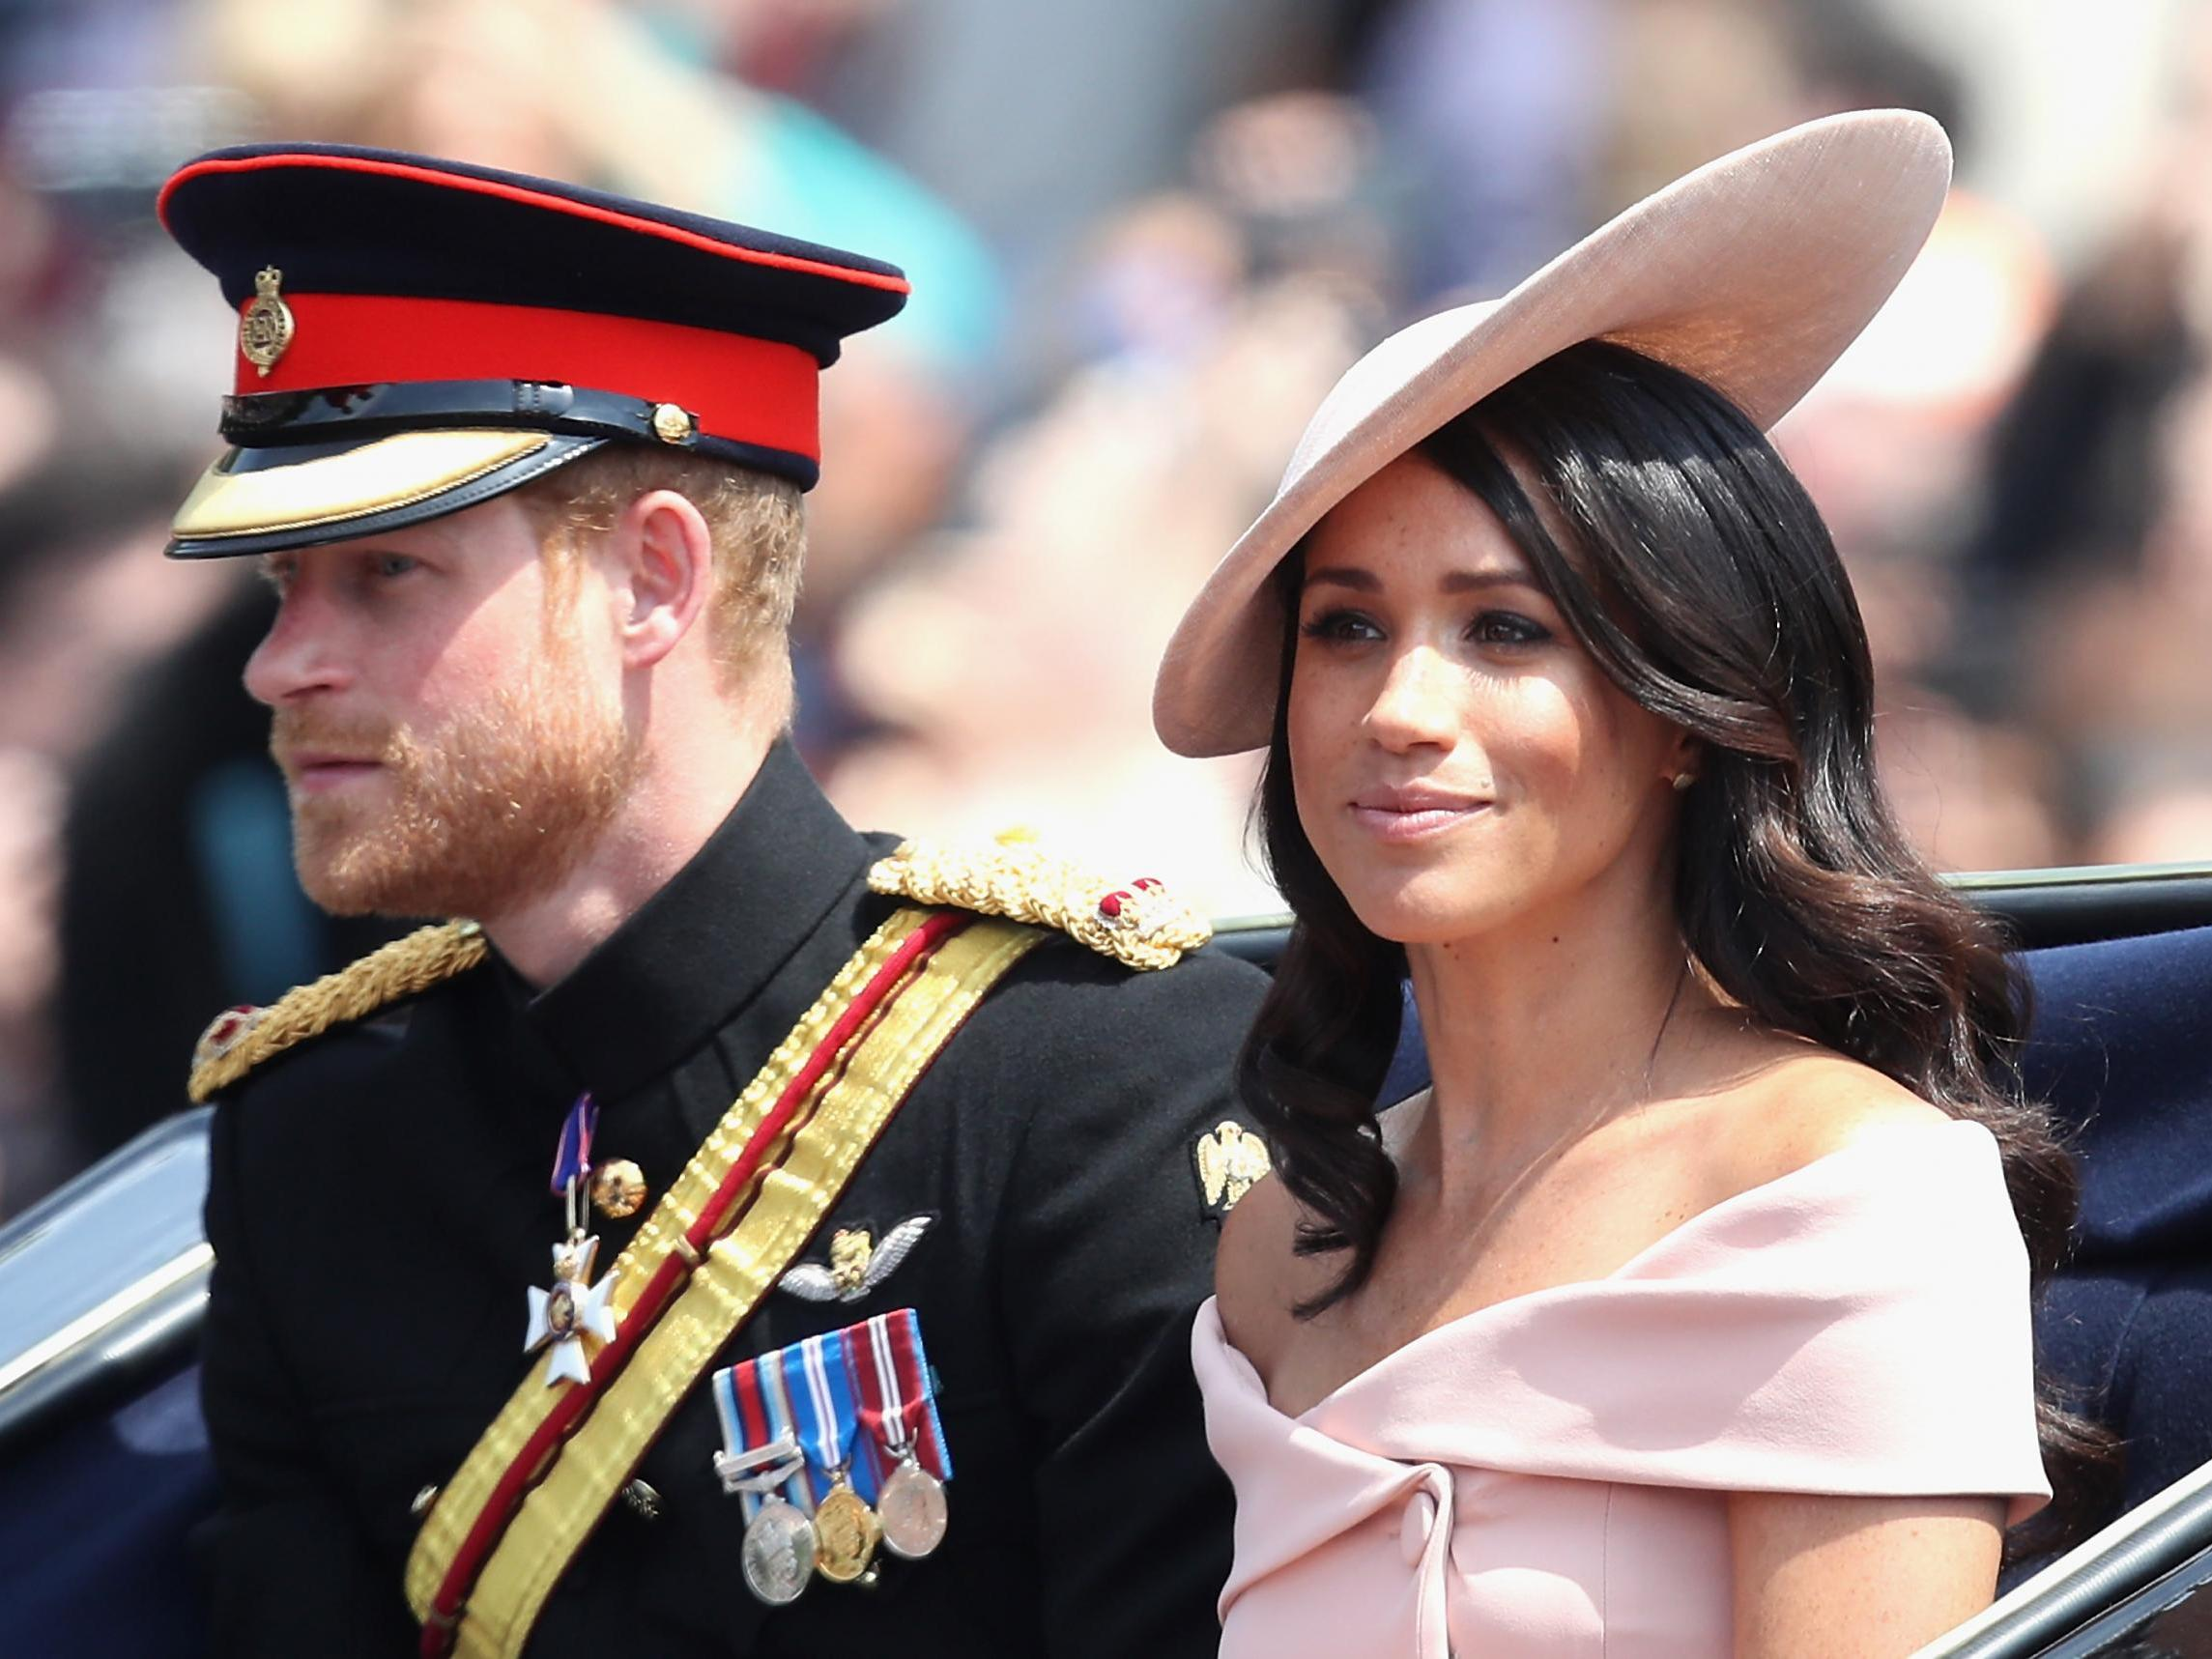 Could Meghan and Prince Harry be welcomed back into the royal fold if they wanted?